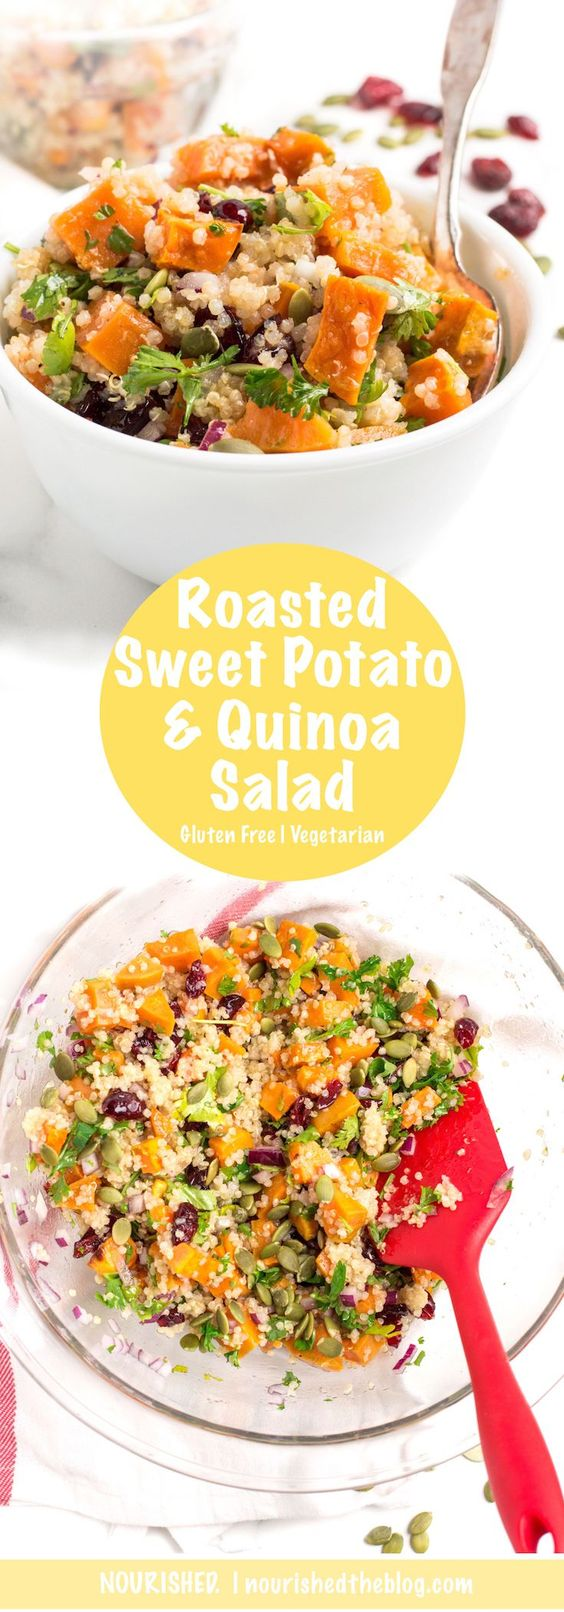 Roasted Sweet Potato Quinoa Salad with Zesty Lime Dressing ...